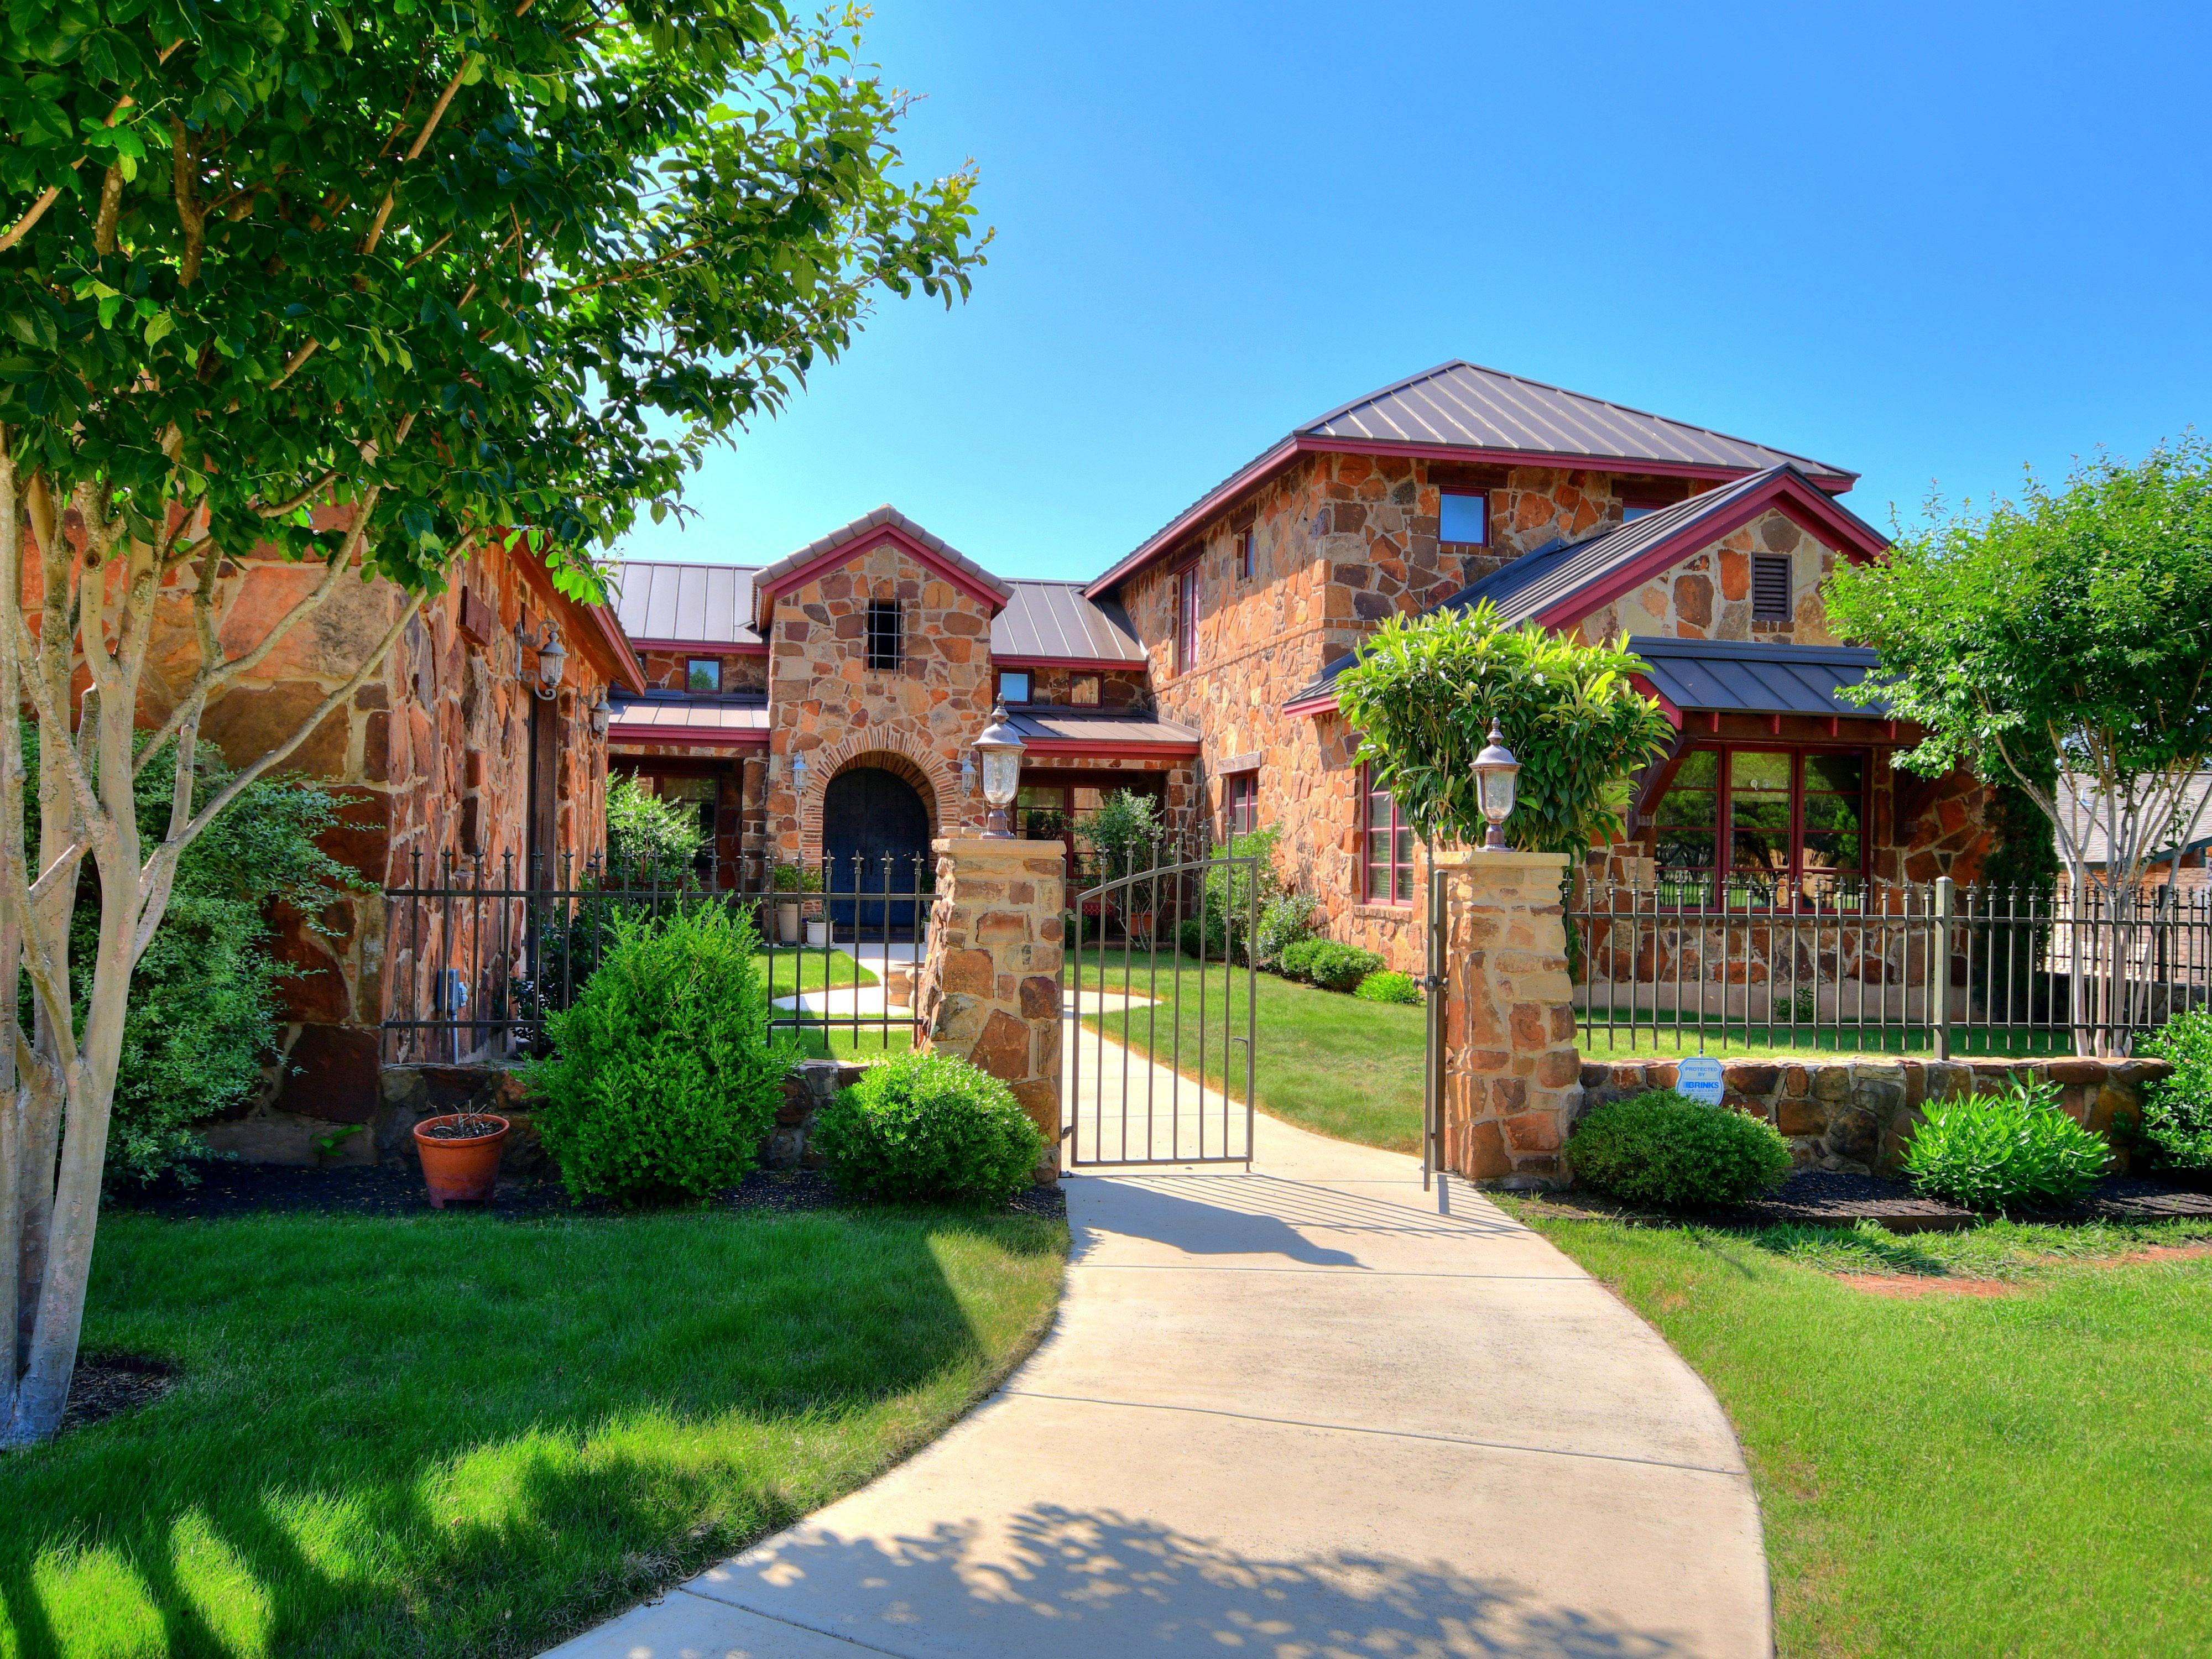 The Tuscan Estate welcomes you! If you would like to stay in a home with pretty valley views and be just 7 minutest to downtown Austin, or 20 minutes to Circuit of the Americas, this is a house for you!